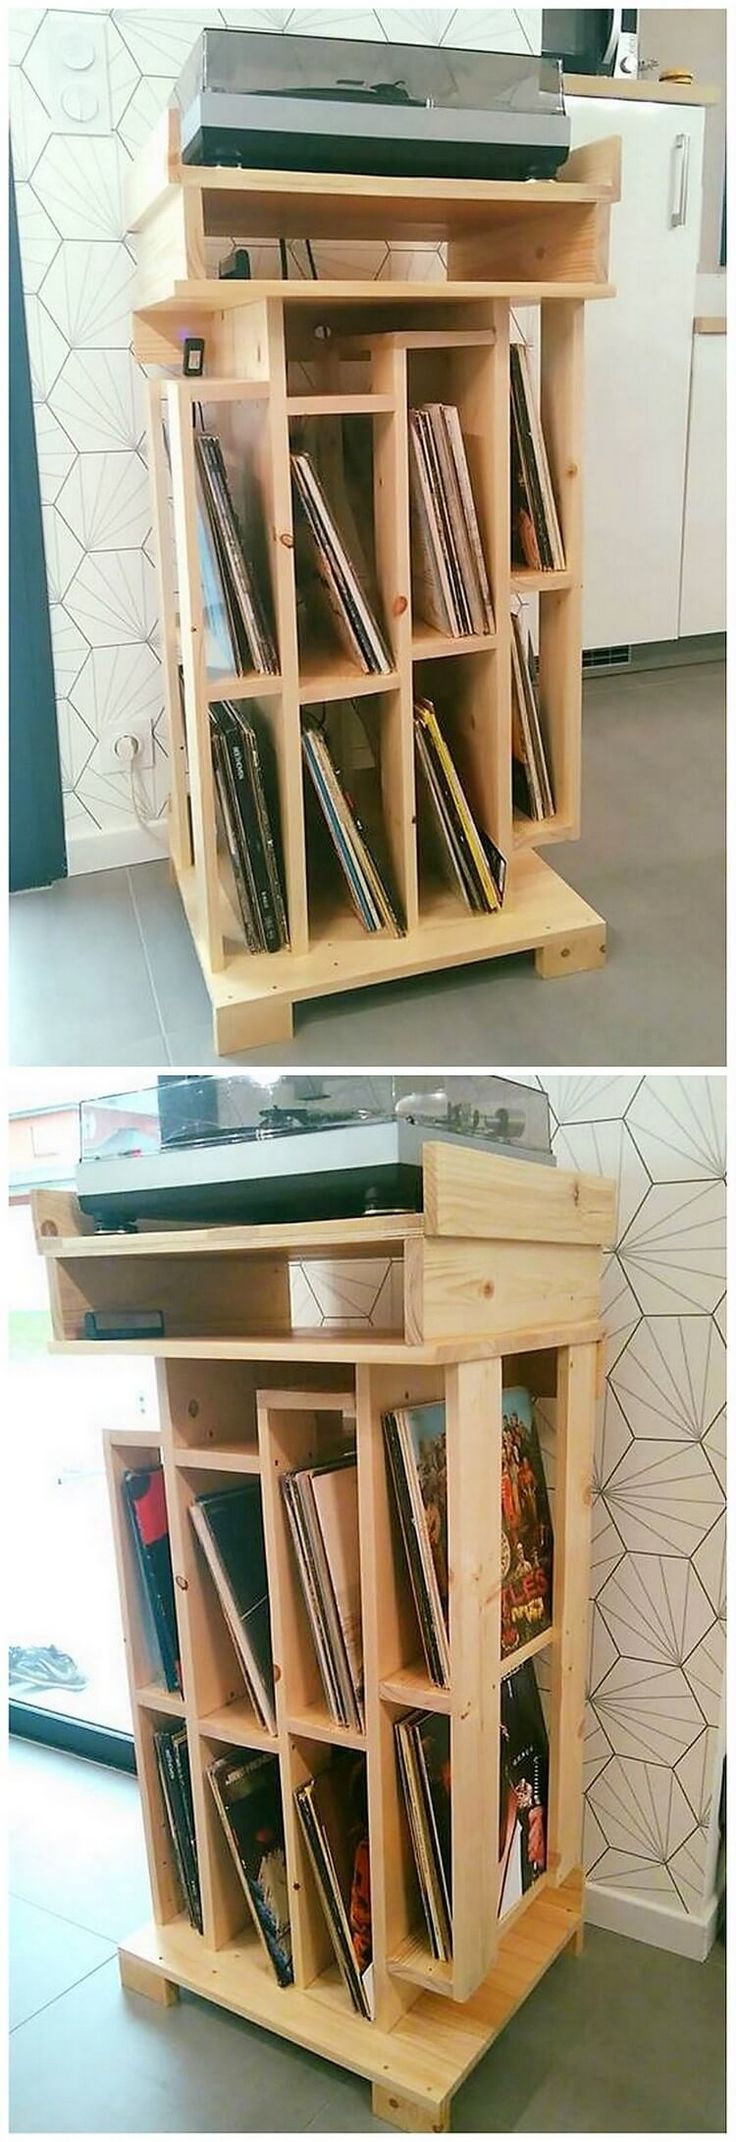 To make your kid's room as a perfect place for the study, we would make you suggest with the idea of adding their rooms with the creative designed wood pallet bookshelf creation project. Into this furniture set, you will view the different portions or divisions of the bookshelves as it is all end up to be super exciting for the kids.